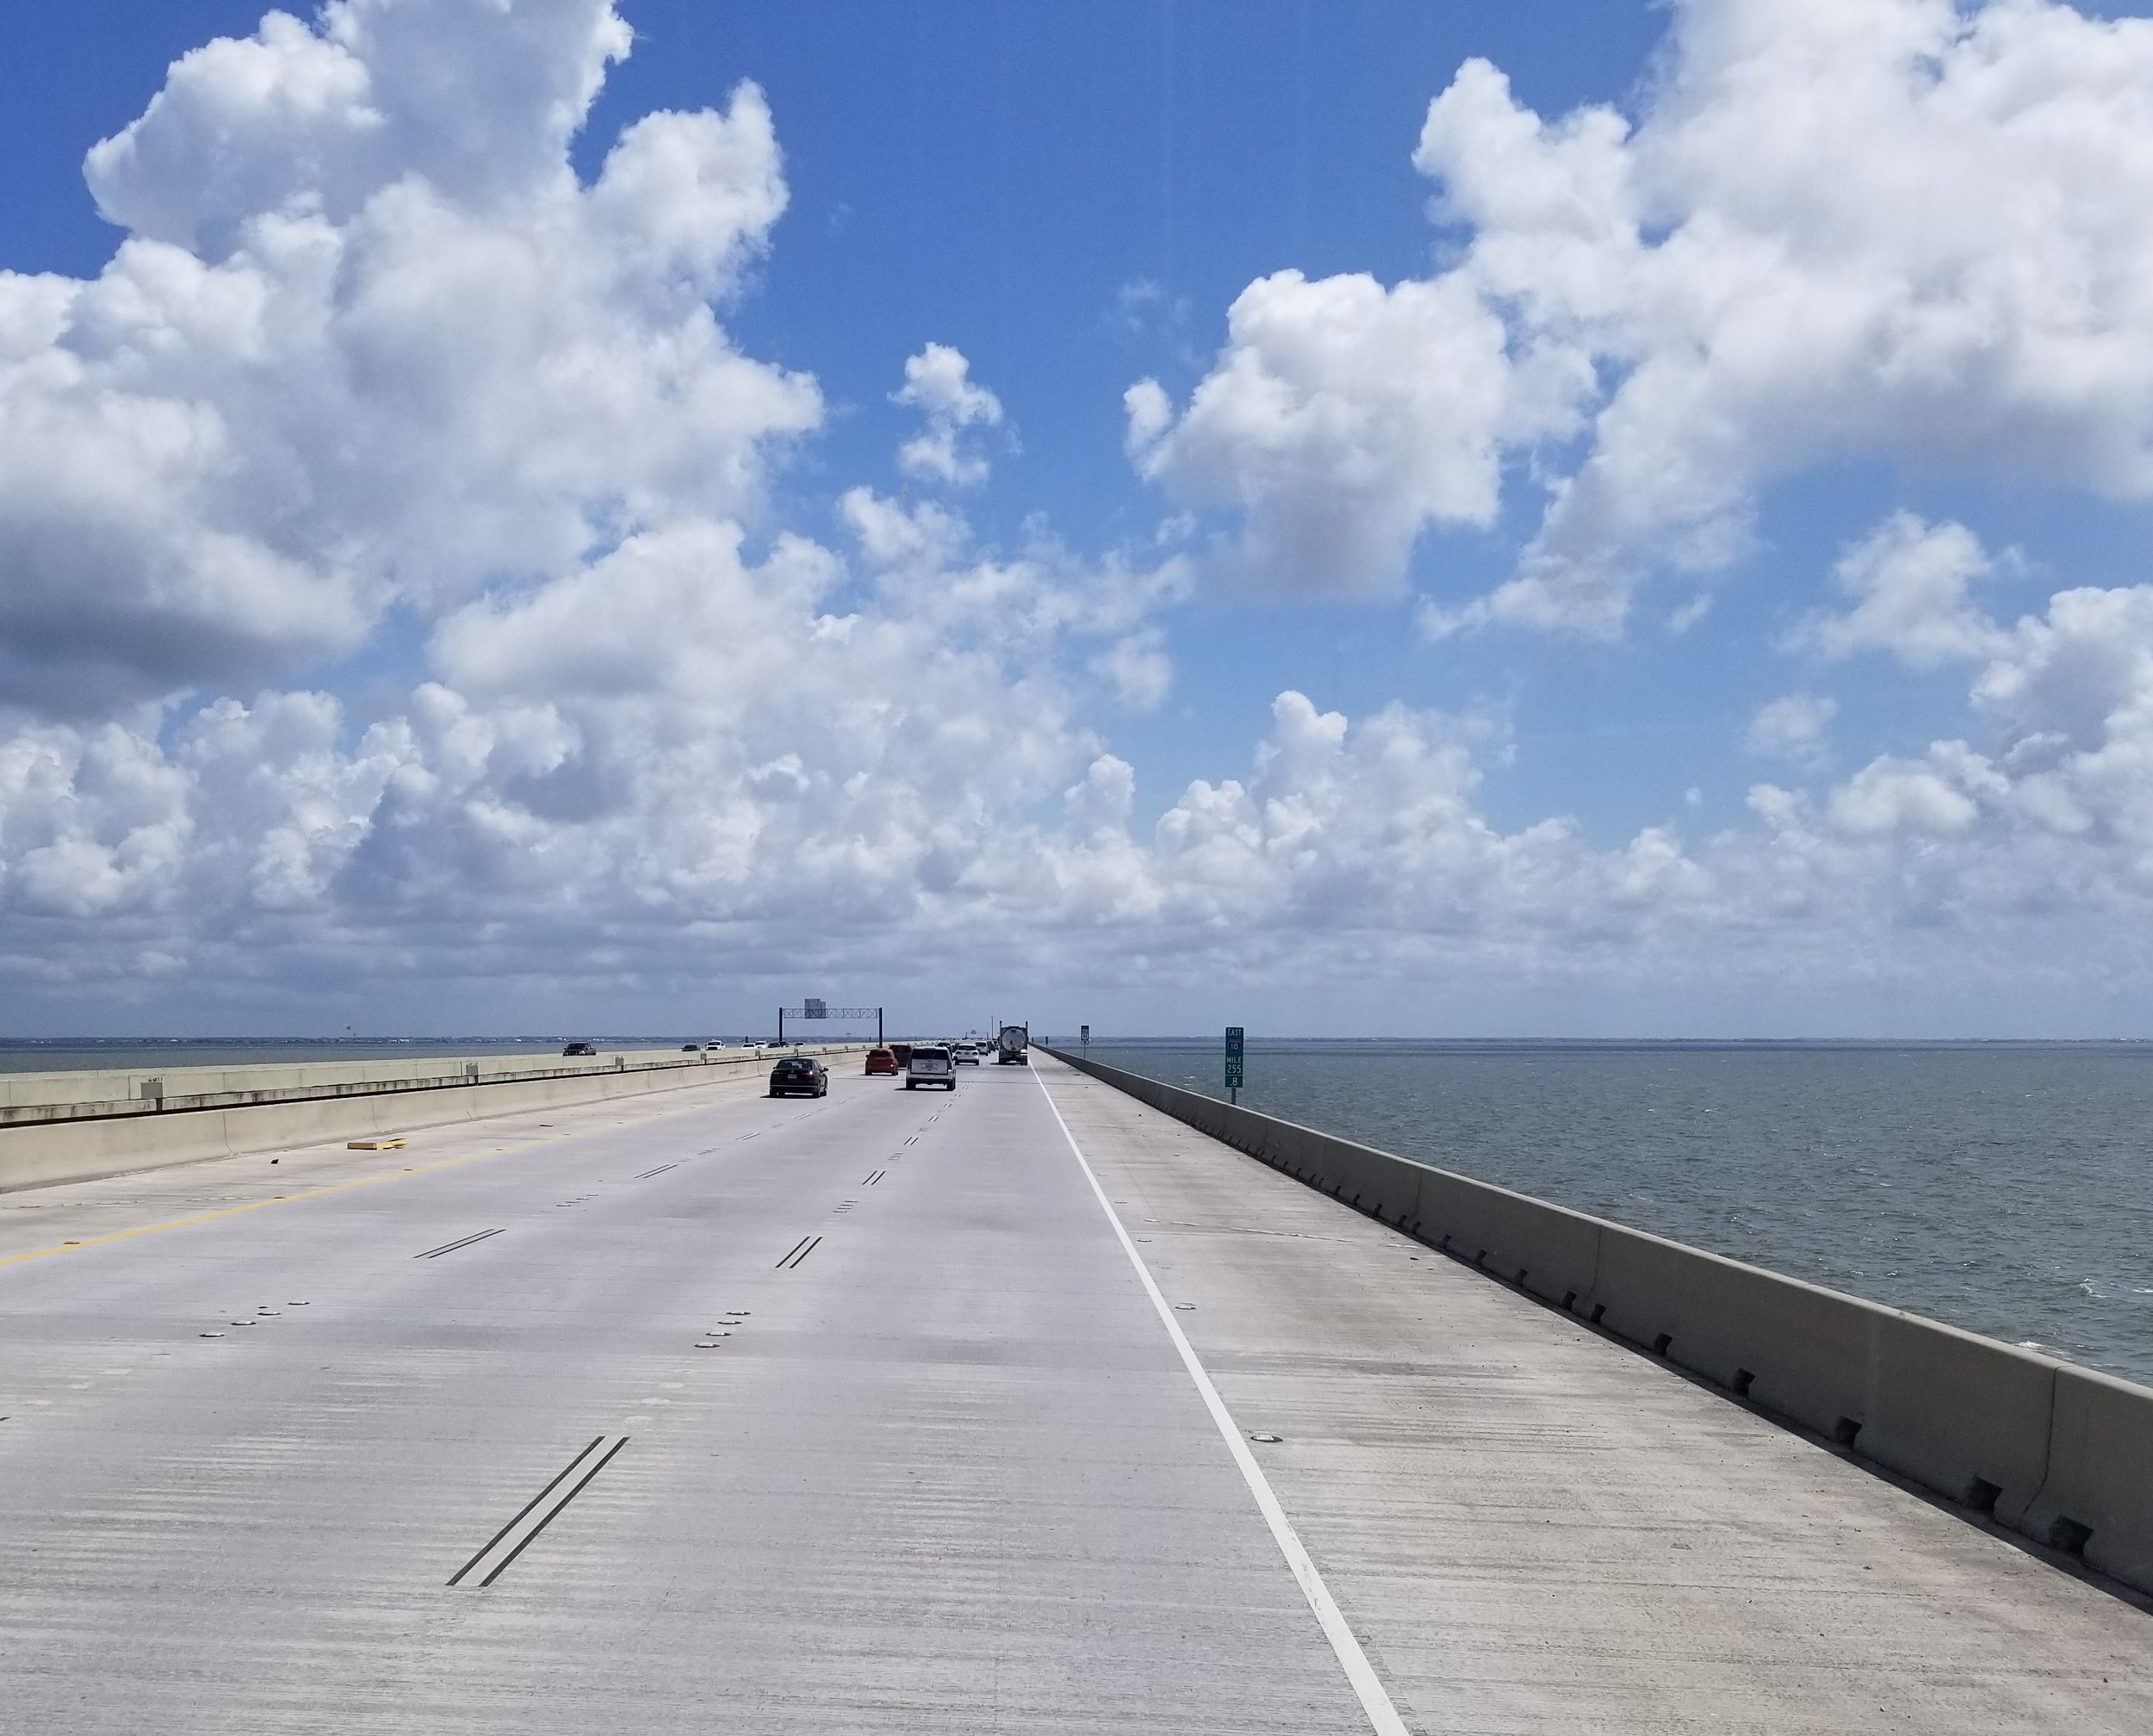 Leaving New Orleans and crossing  Lake Pontchartrain  and heading to Biloxi, Mississippi